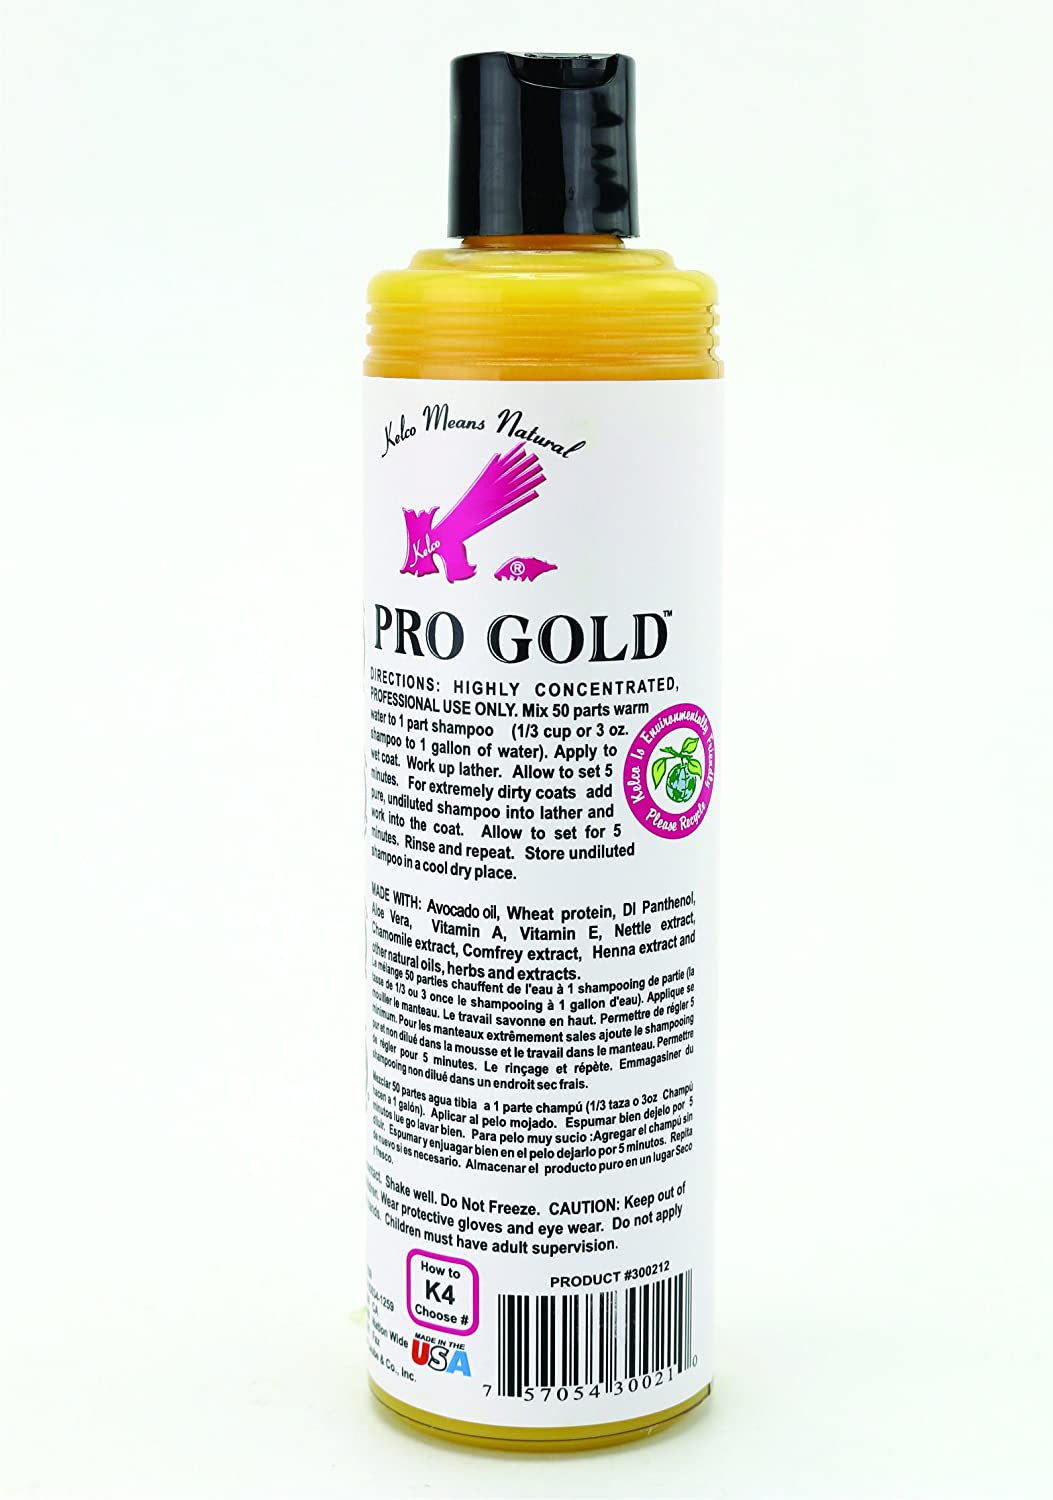 Amazon.com : Kelco Pro Gold Shampoo, 11.7 fl. oz. : Pet Natural Shampoos : Pet Supplies